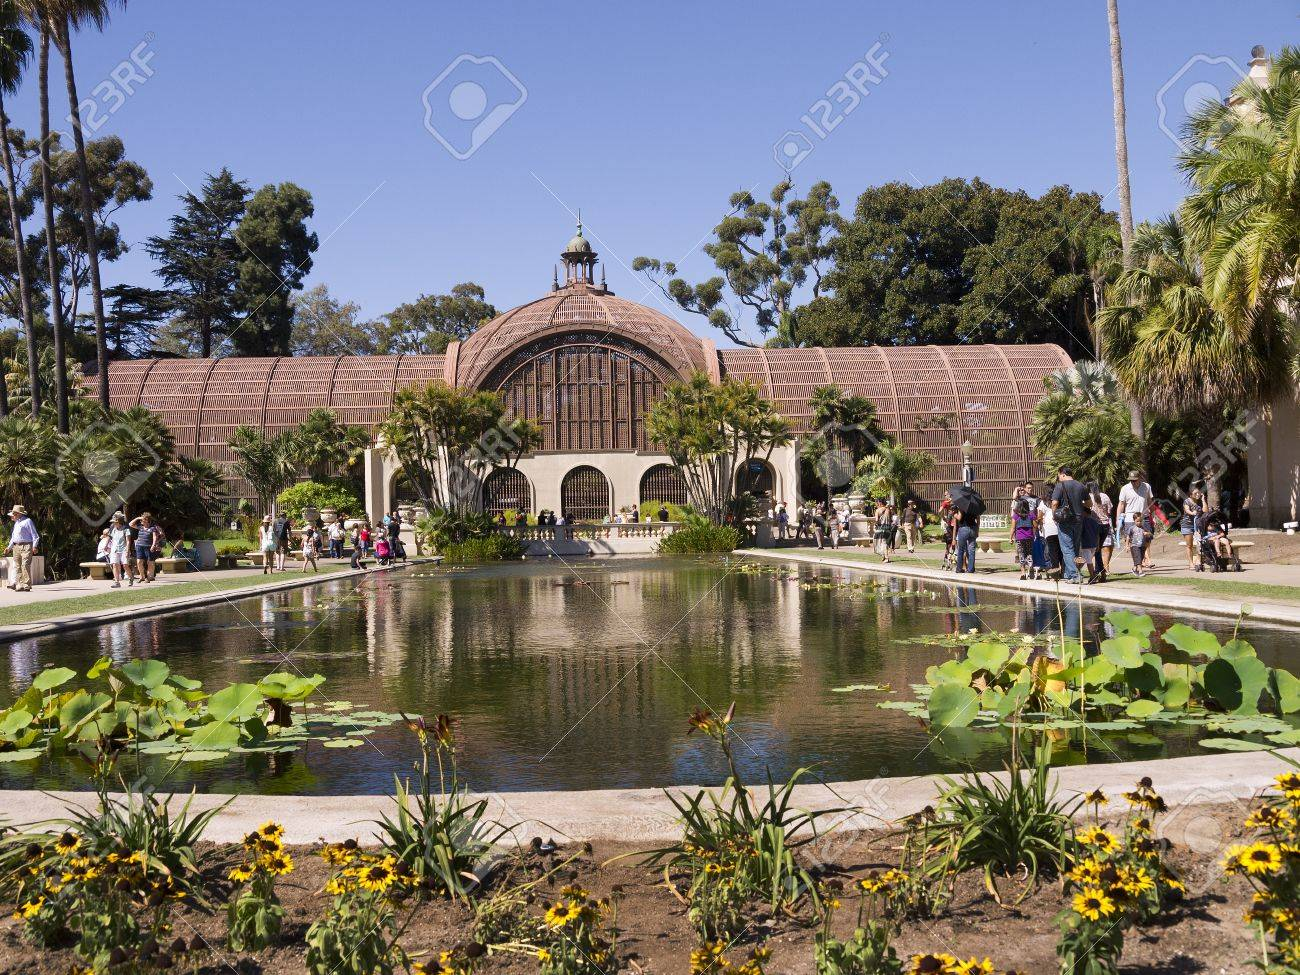 Botanical Garden Building In Balboa Park In San Diego California ...